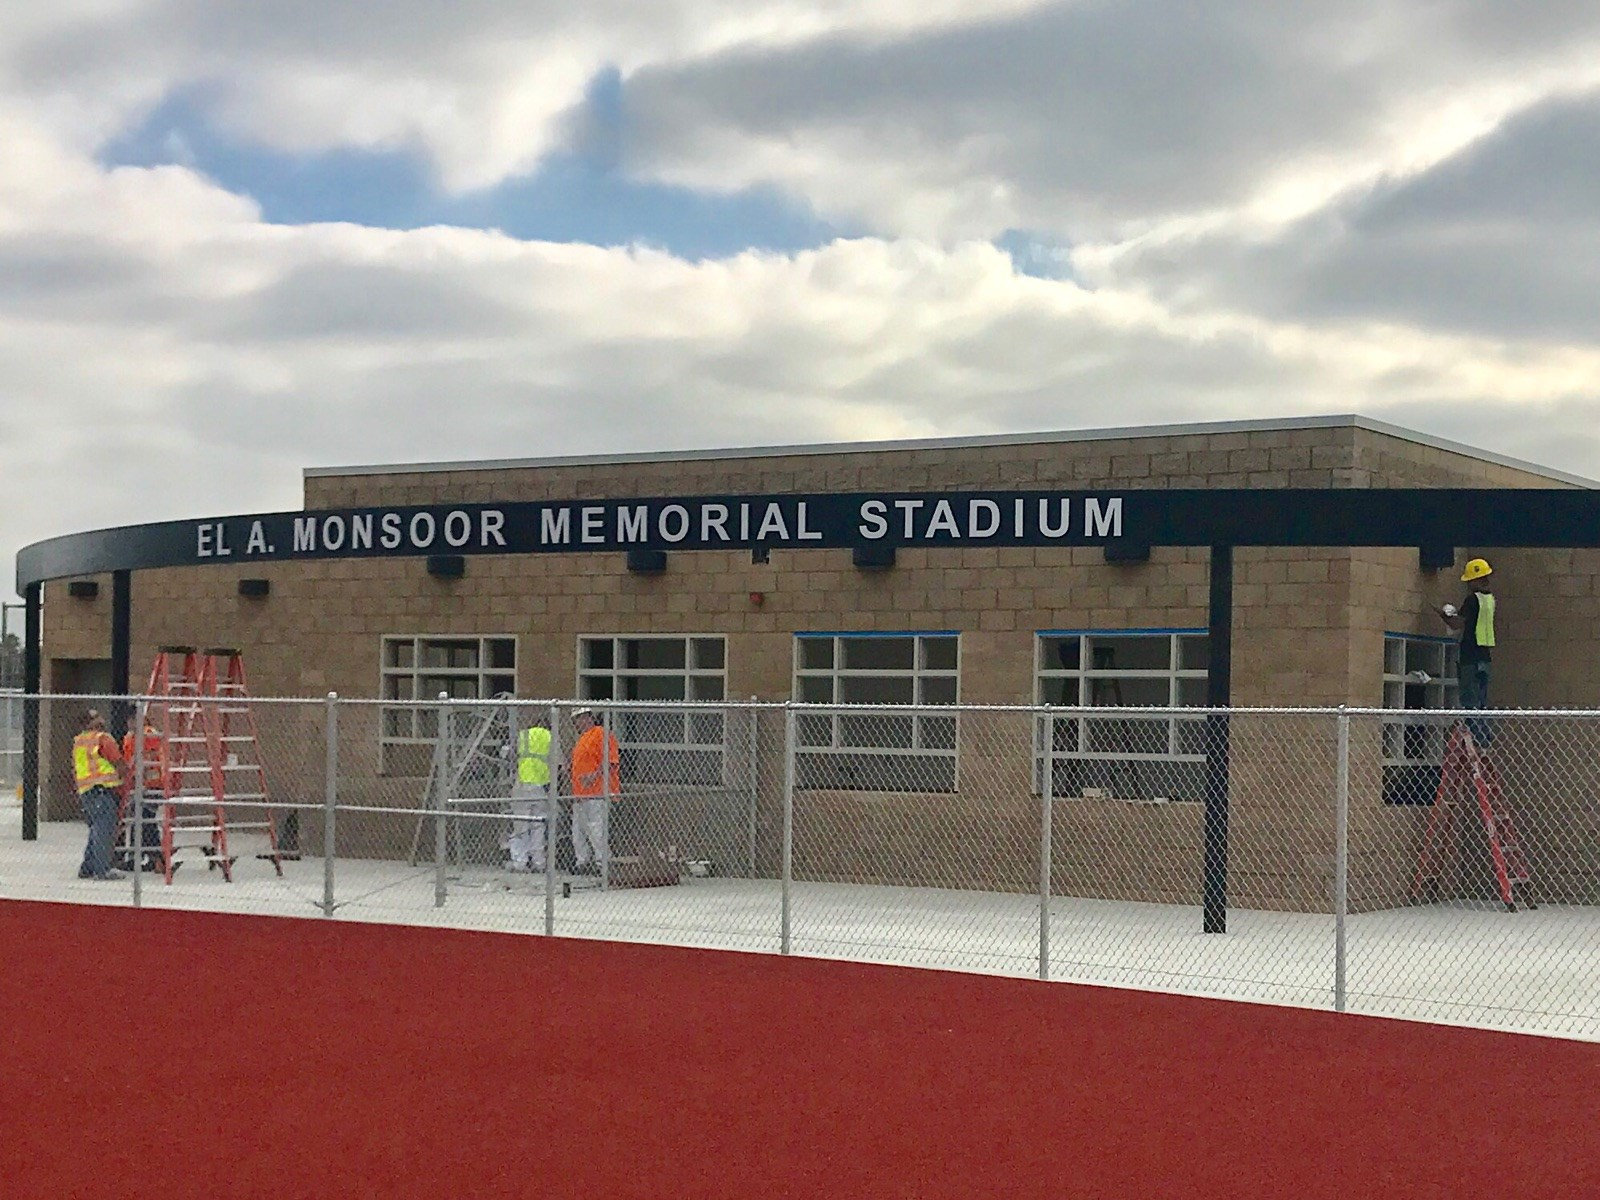 Crews working on the final touches of the concession stand at Michael A. Monsoor Memorial Stadium.